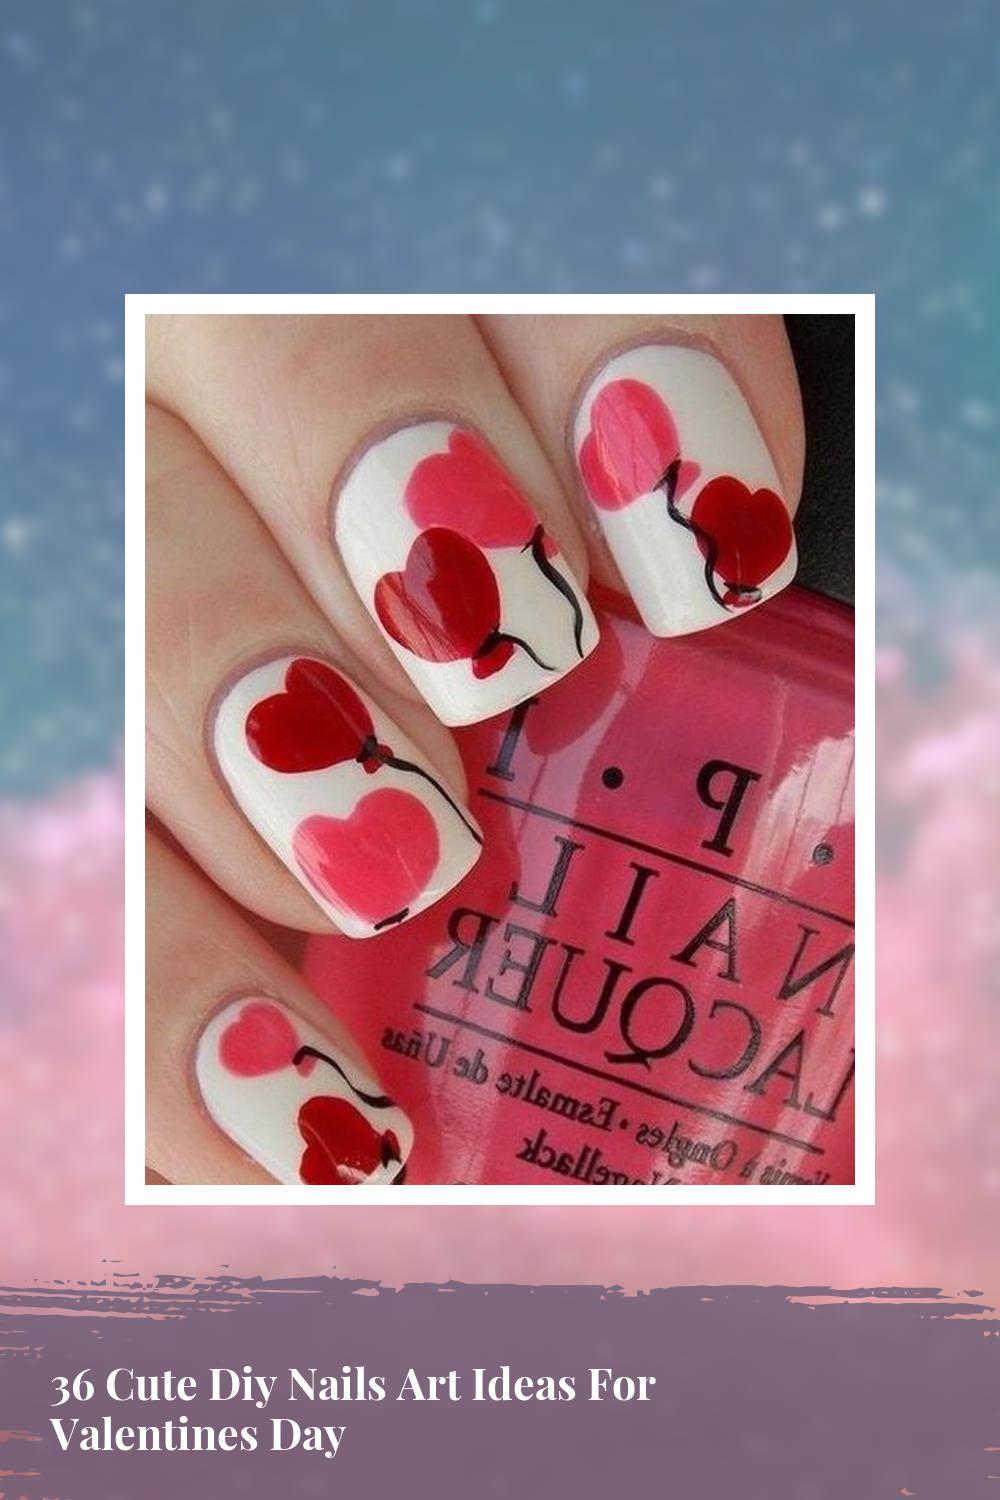 36 Cute Diy Nails Art Ideas For Valentines Day 1